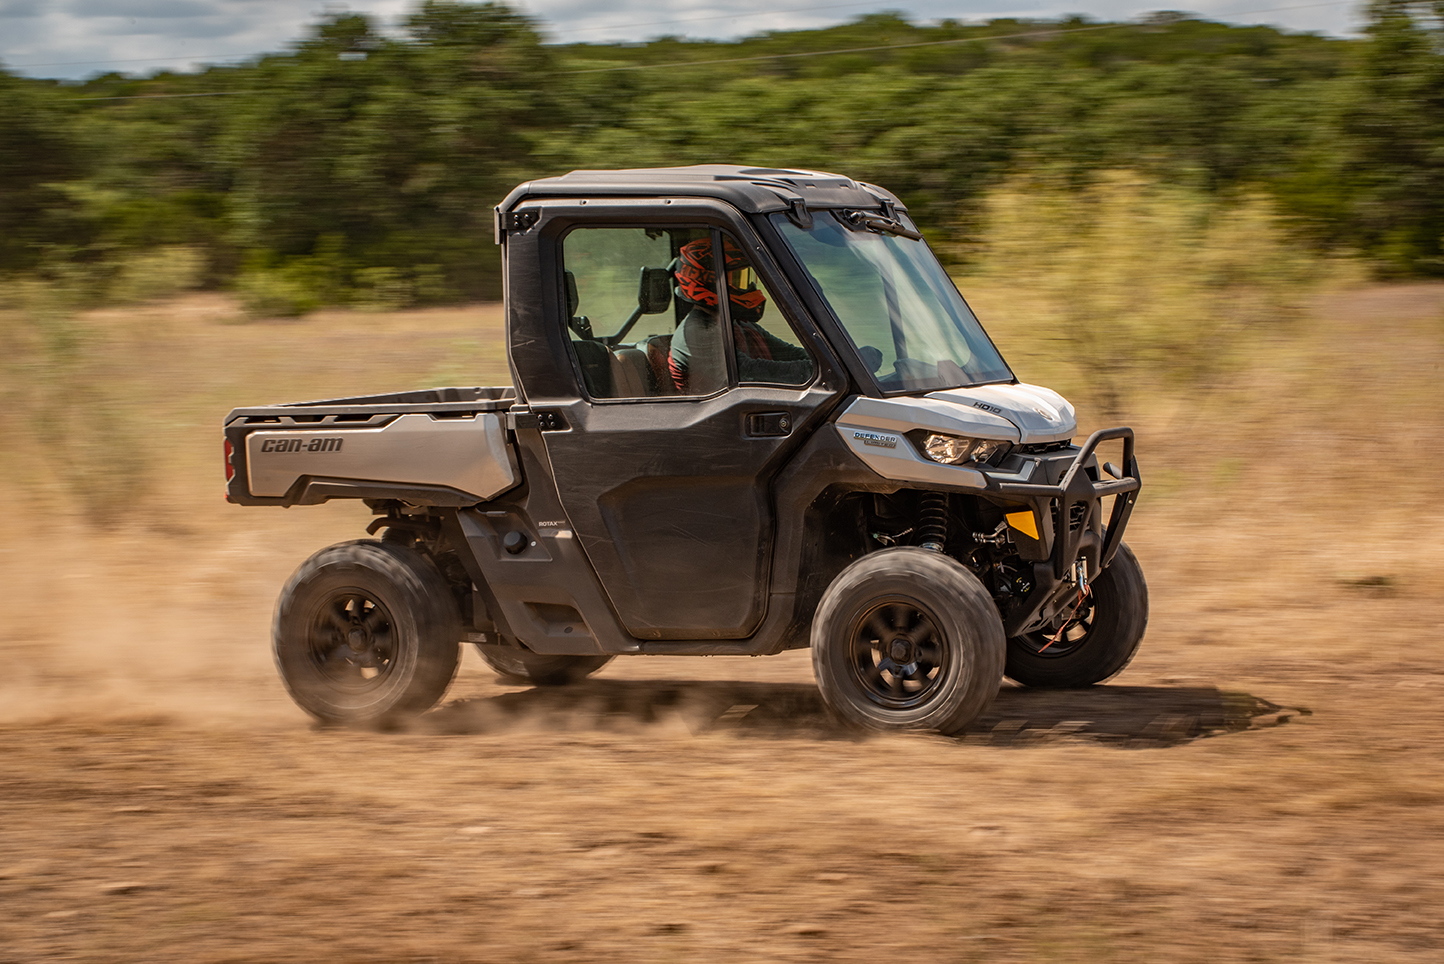 2020 Can-Am Defender Limited Review